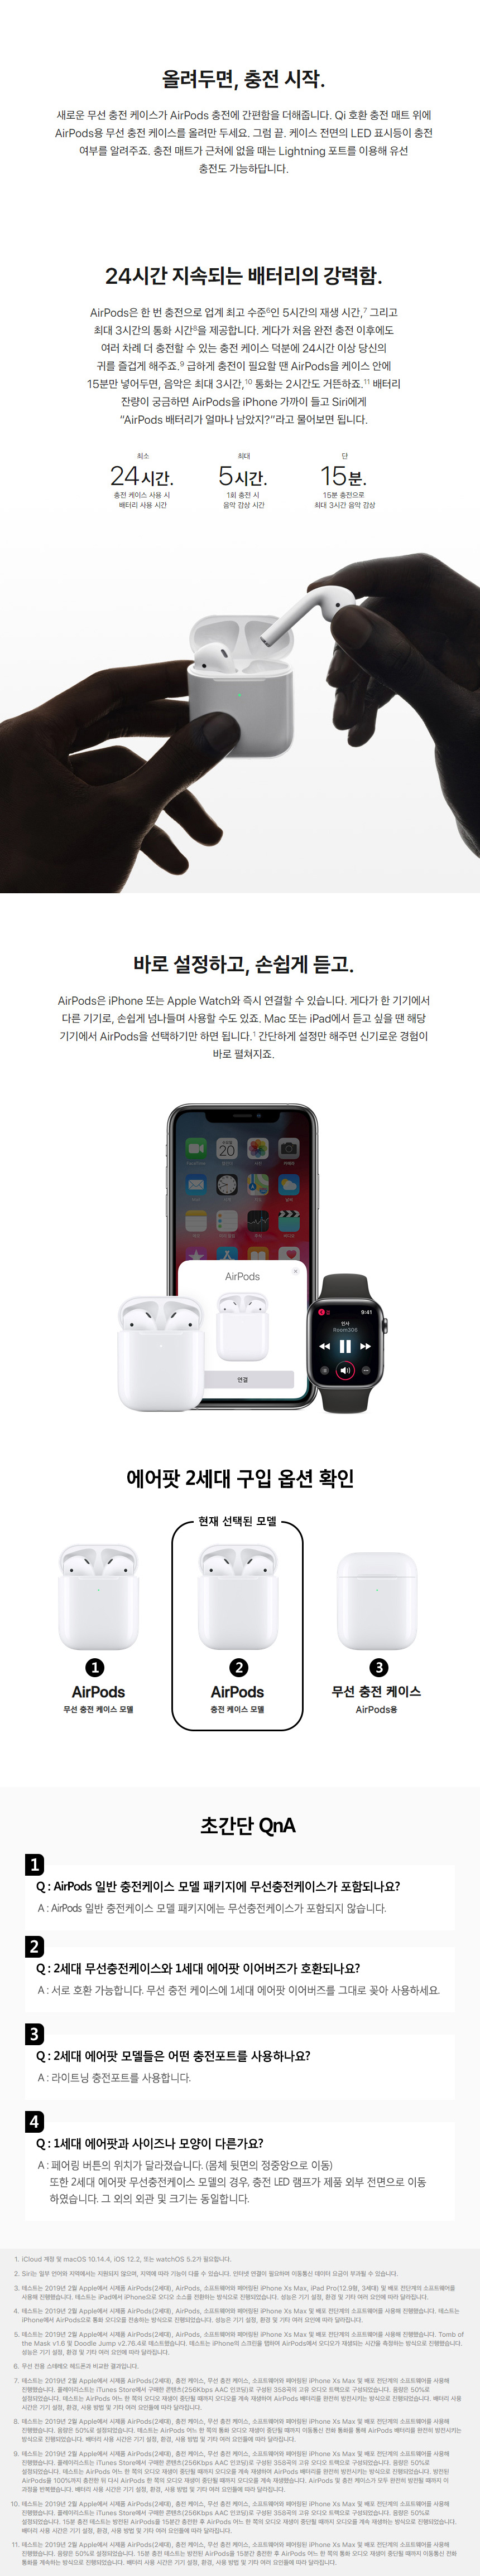 AirPods_2(유선)_02